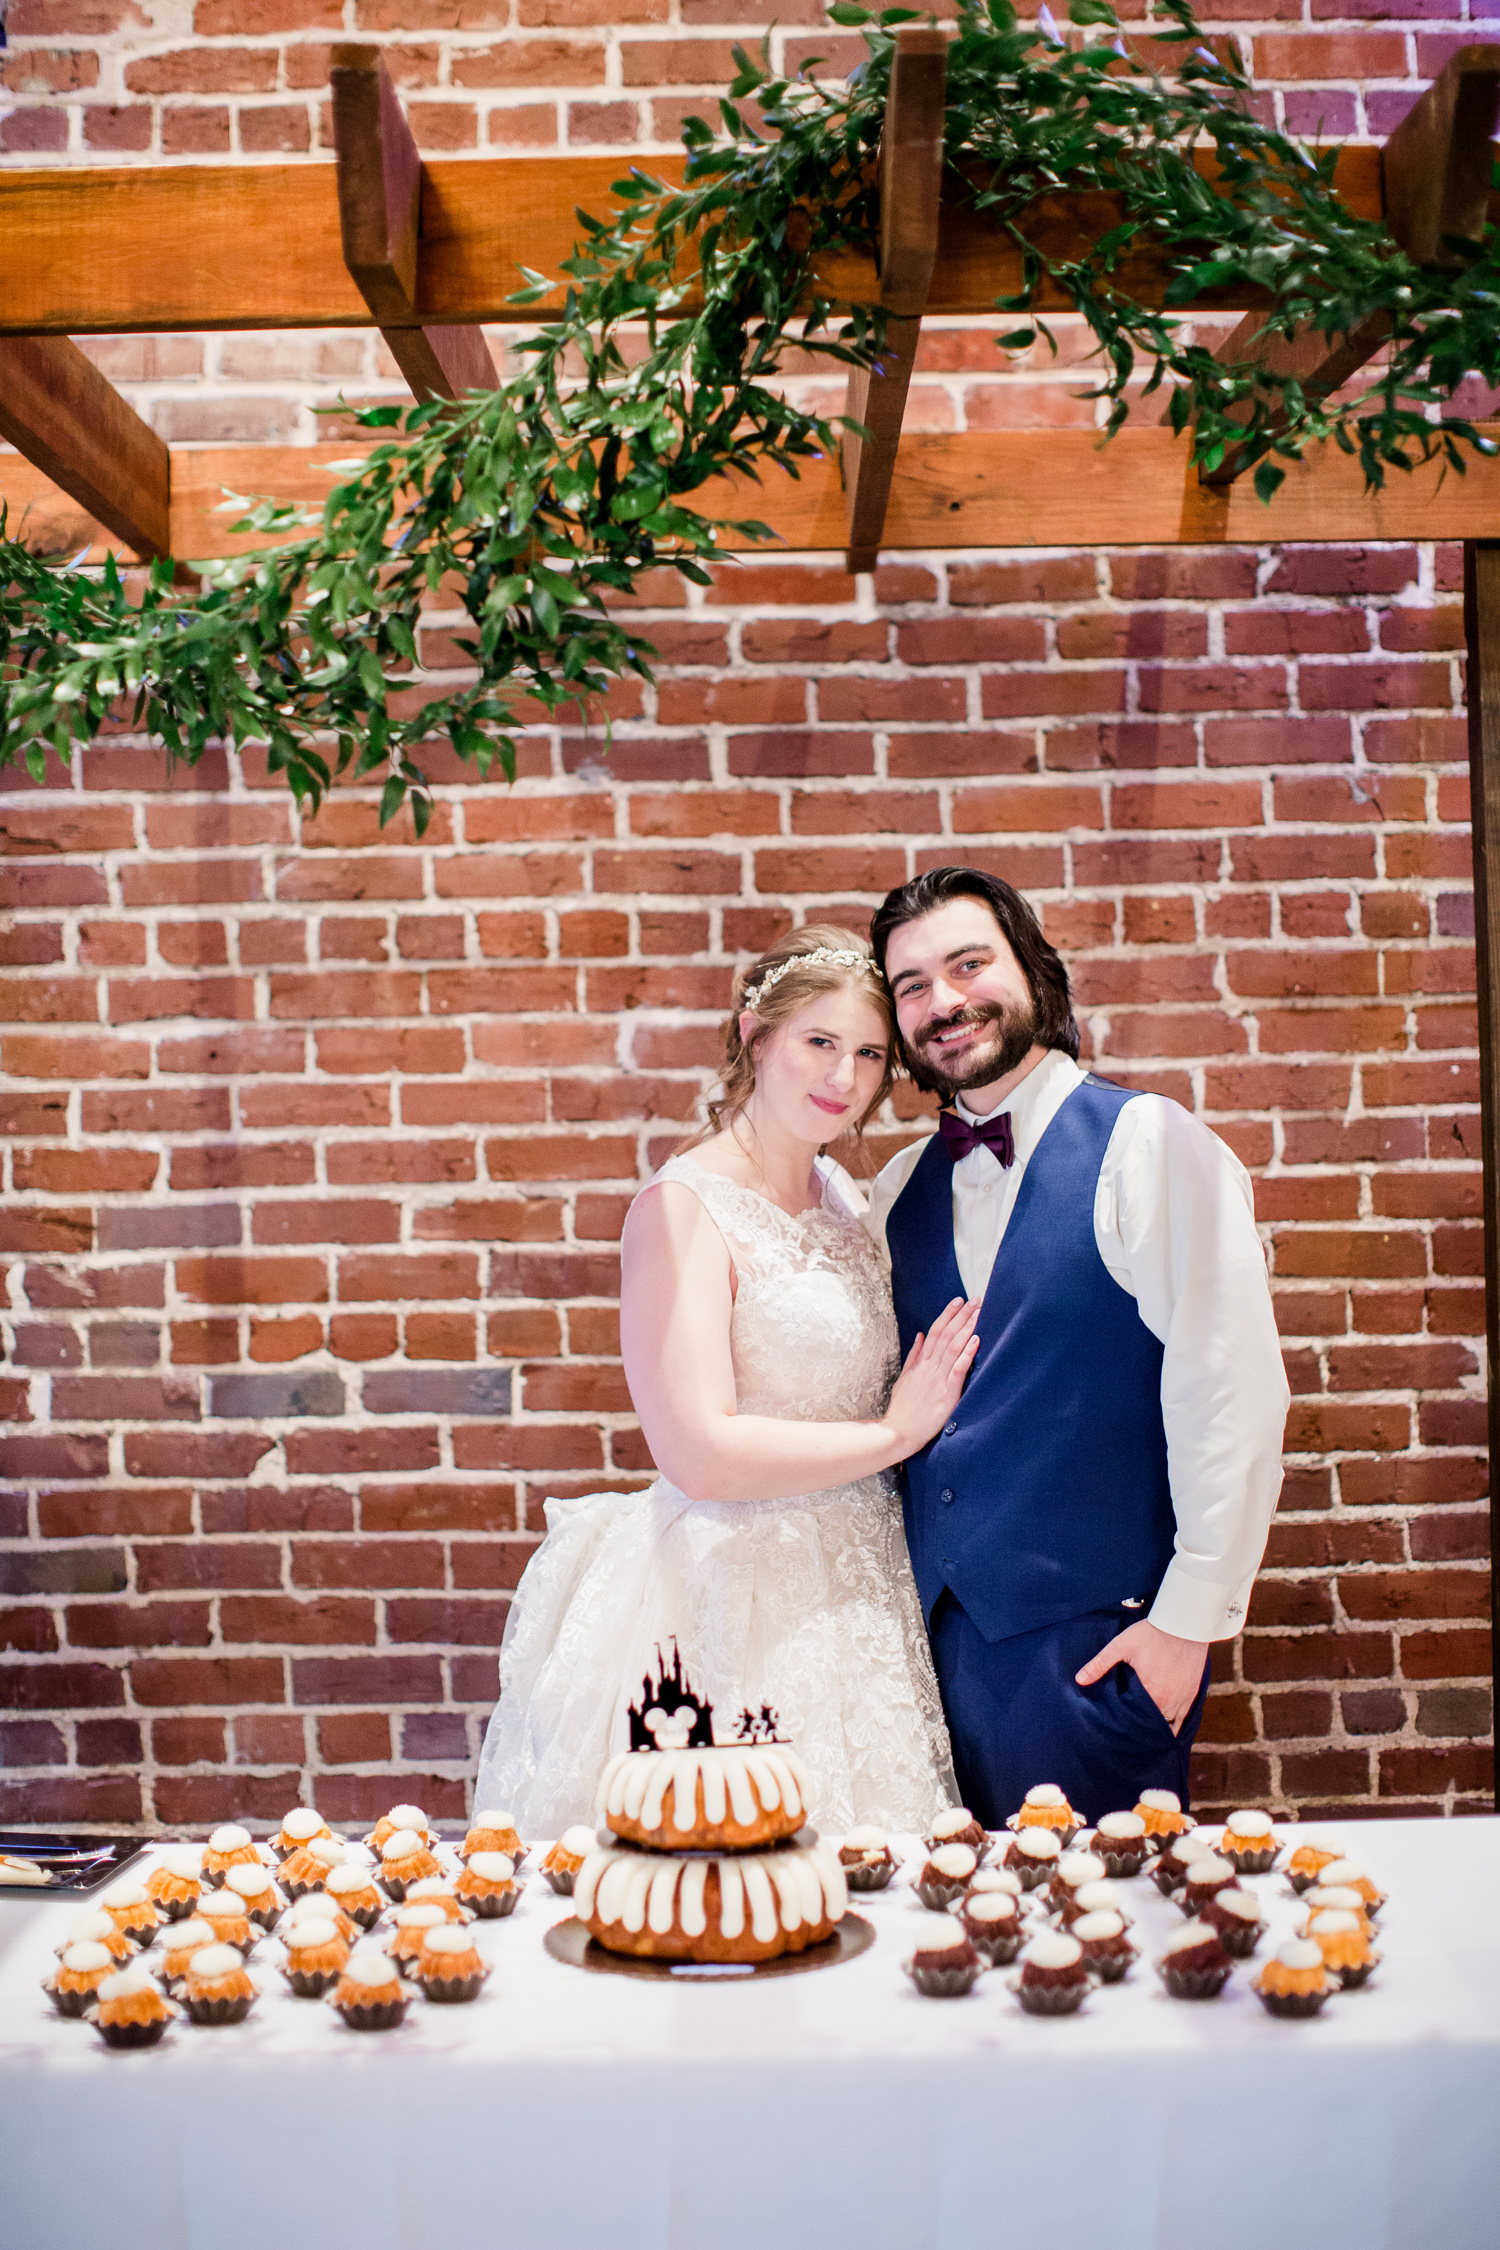 Downtown Knoxville Wedding Venue // Central Avenue Reception // Cutting the Cake